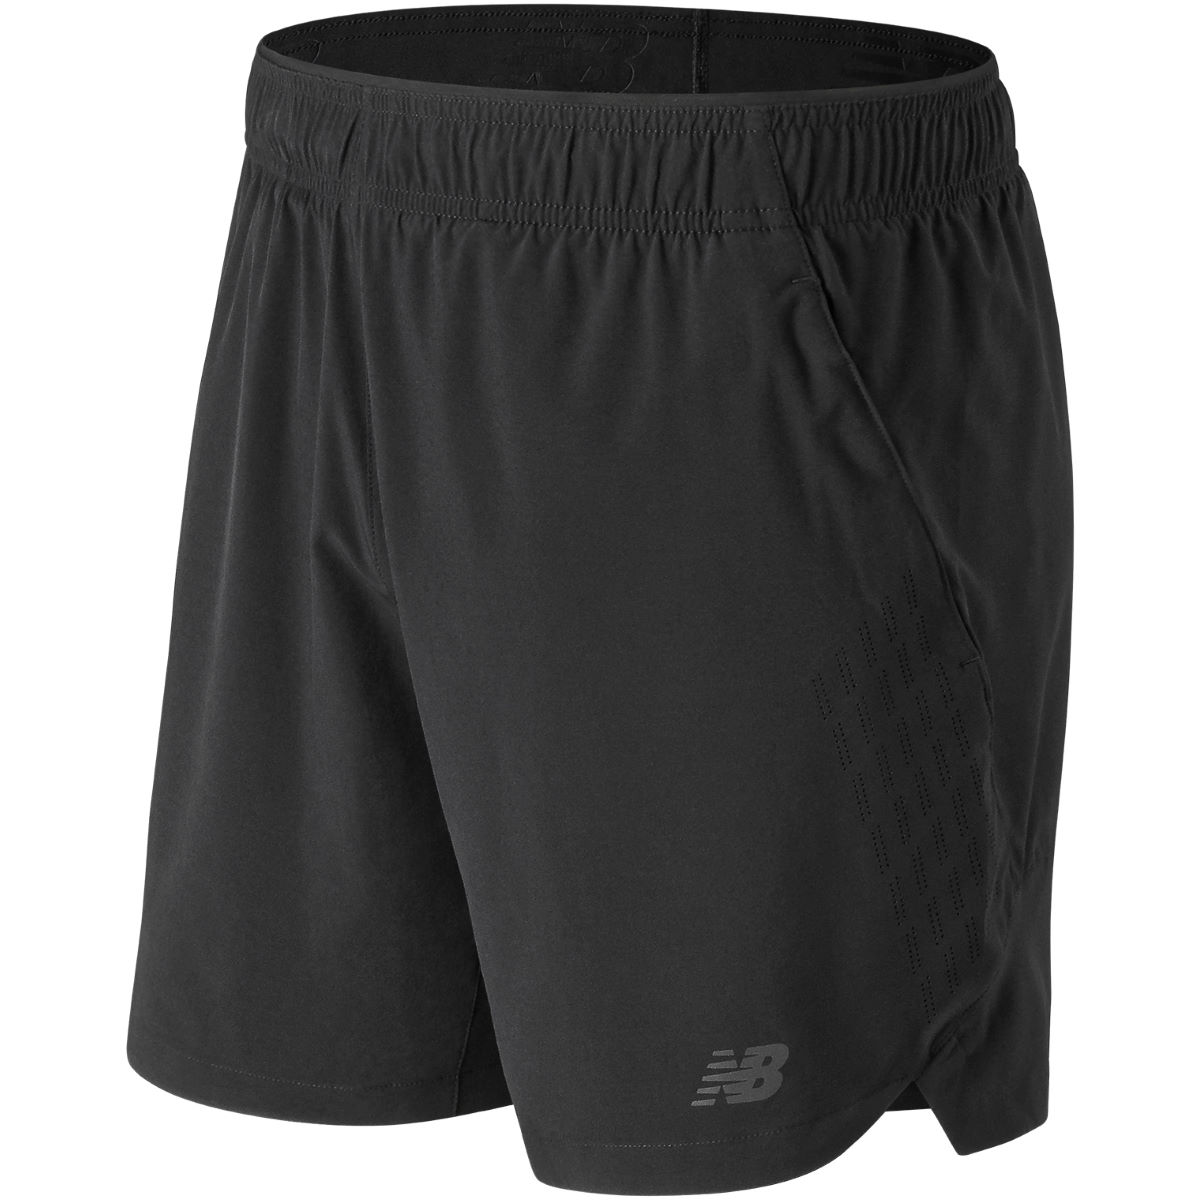 New Balance New Balance Fortitech 7in 2in1 Short   Shorts